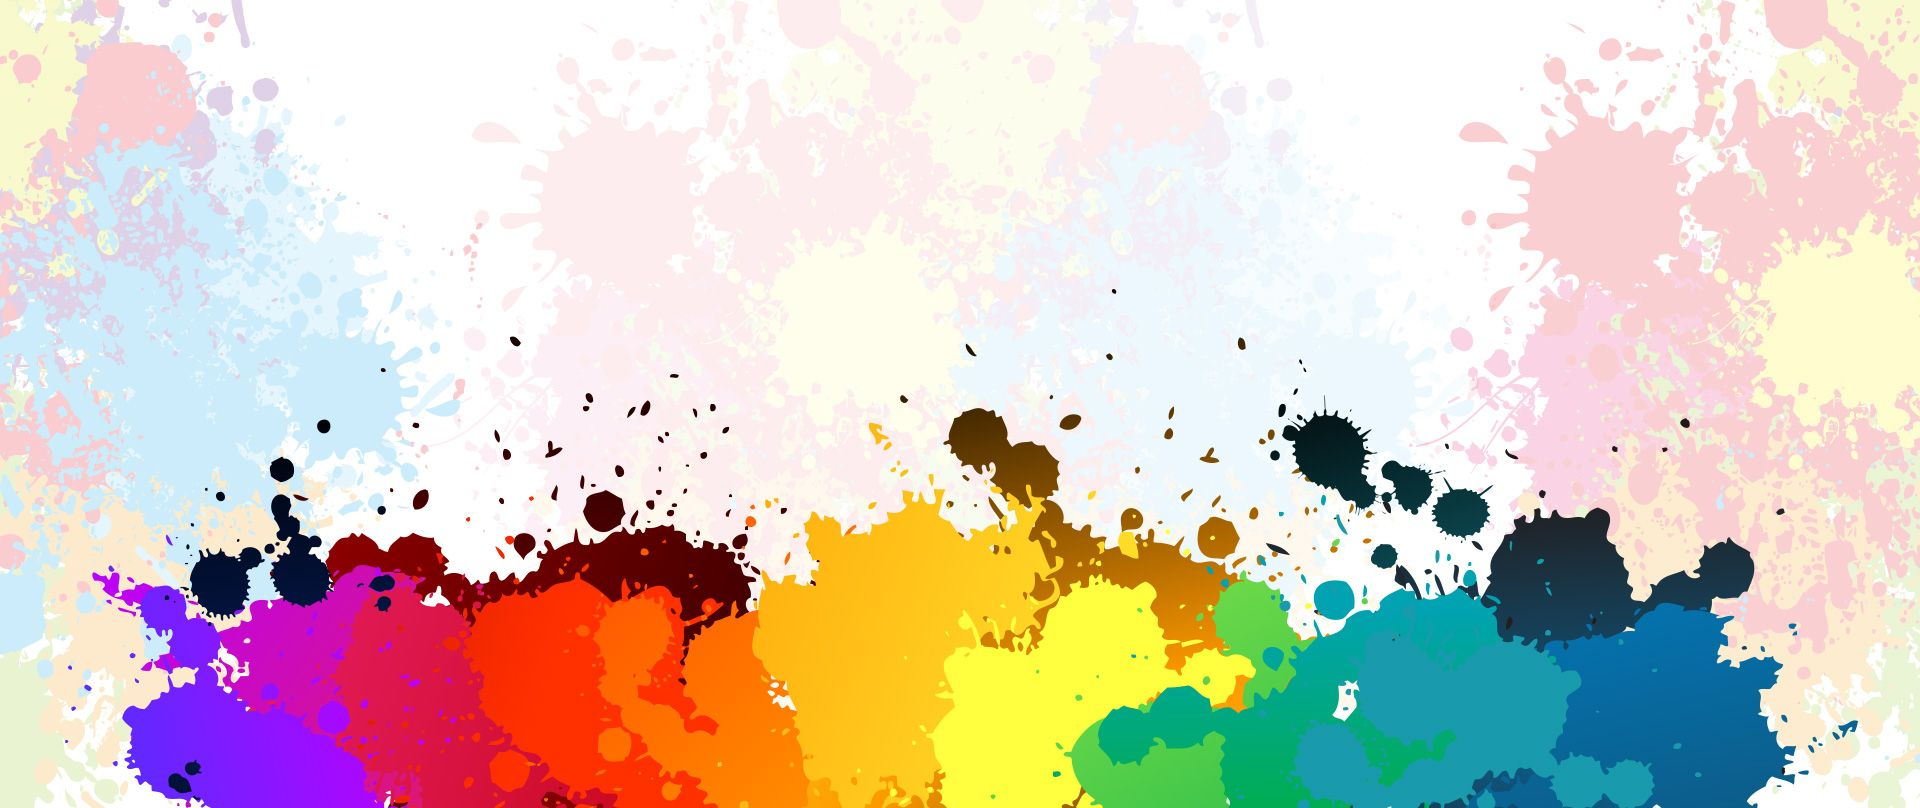 Colorful Ink Splash Brush Background In 2020 Paint Splash